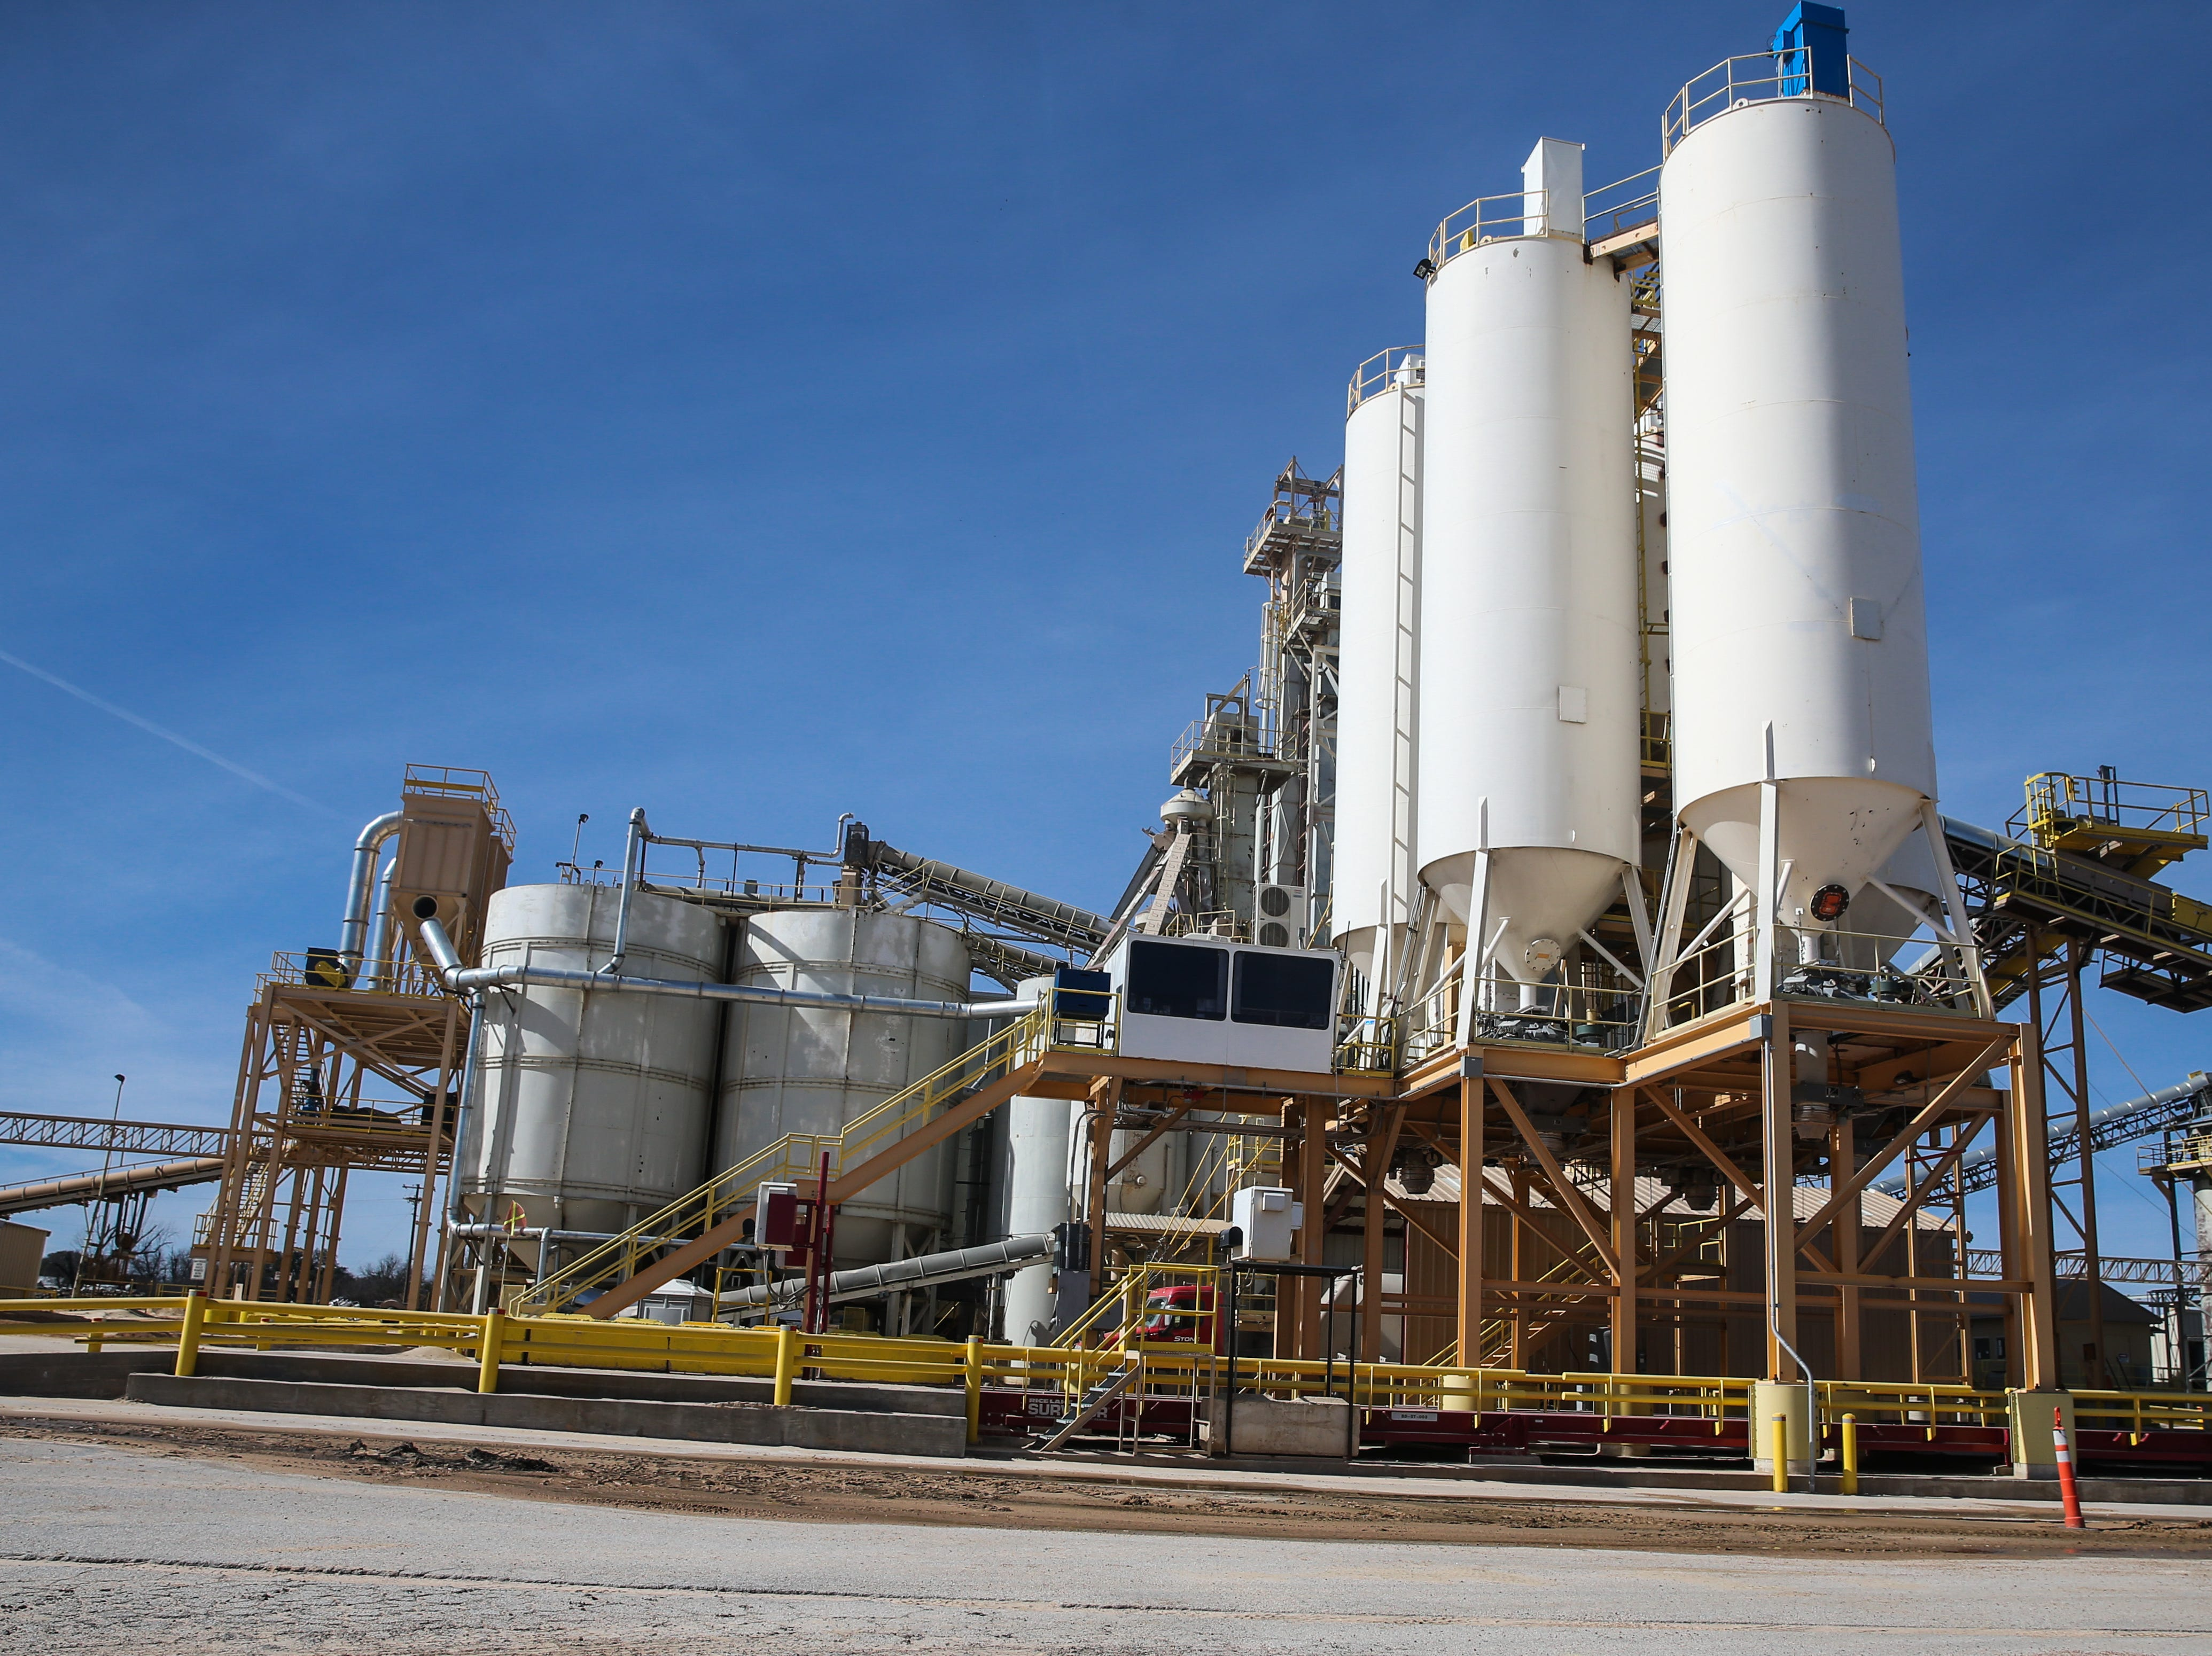 Pioneer Sands plant is still operating Thursday, Jan. 17, 2019, by 11th Street in Brady. The sand plants are closing, leaving the city without a major source of employment and revenues.